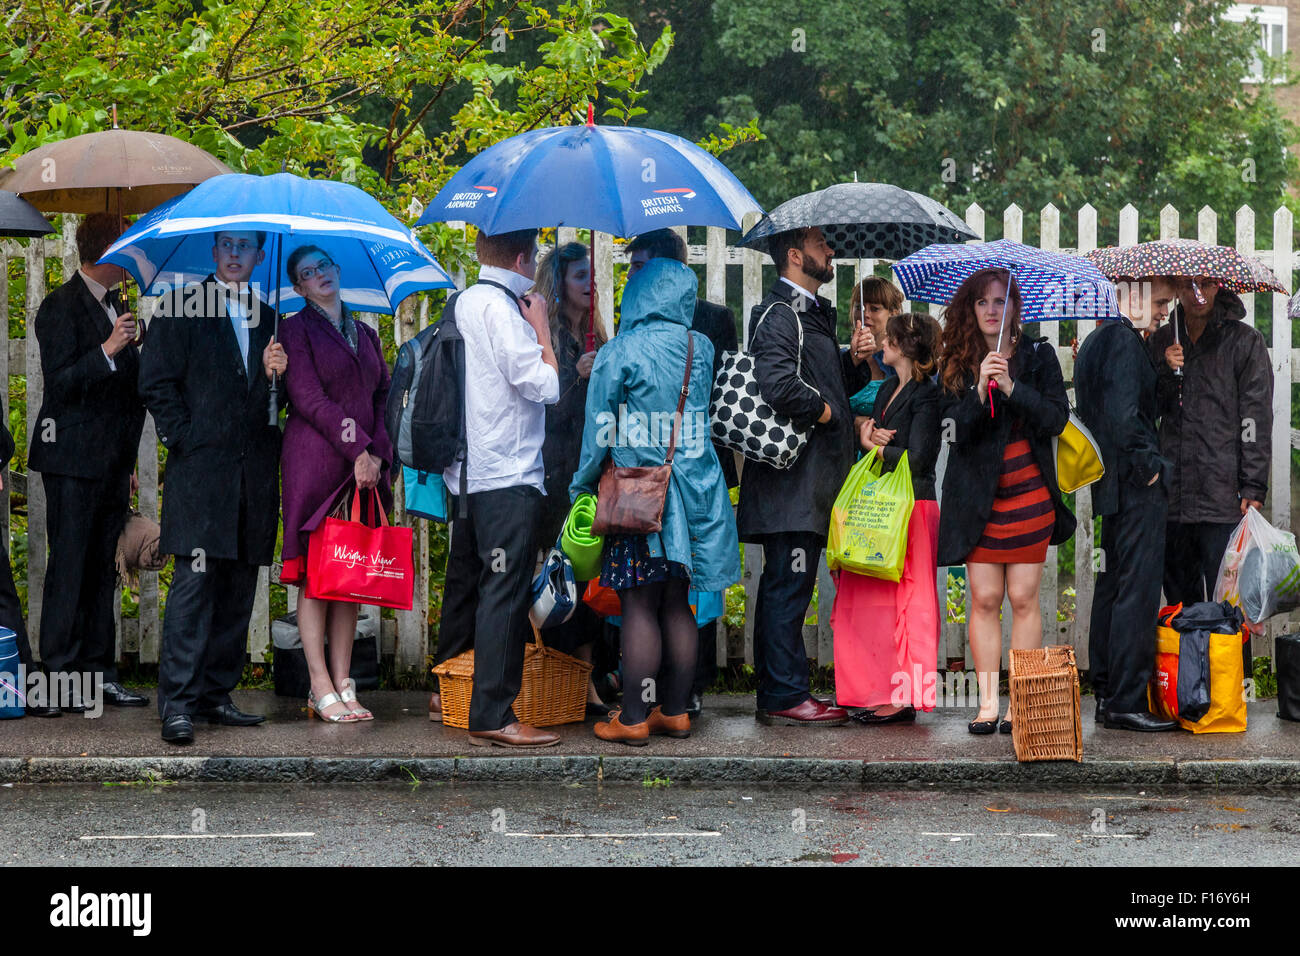 Young Opera Fans Wait In The Pouring Rain At Lewes Station For A Bus Take Them To Glyndebourne Opera House, Lewes, - Stock Image